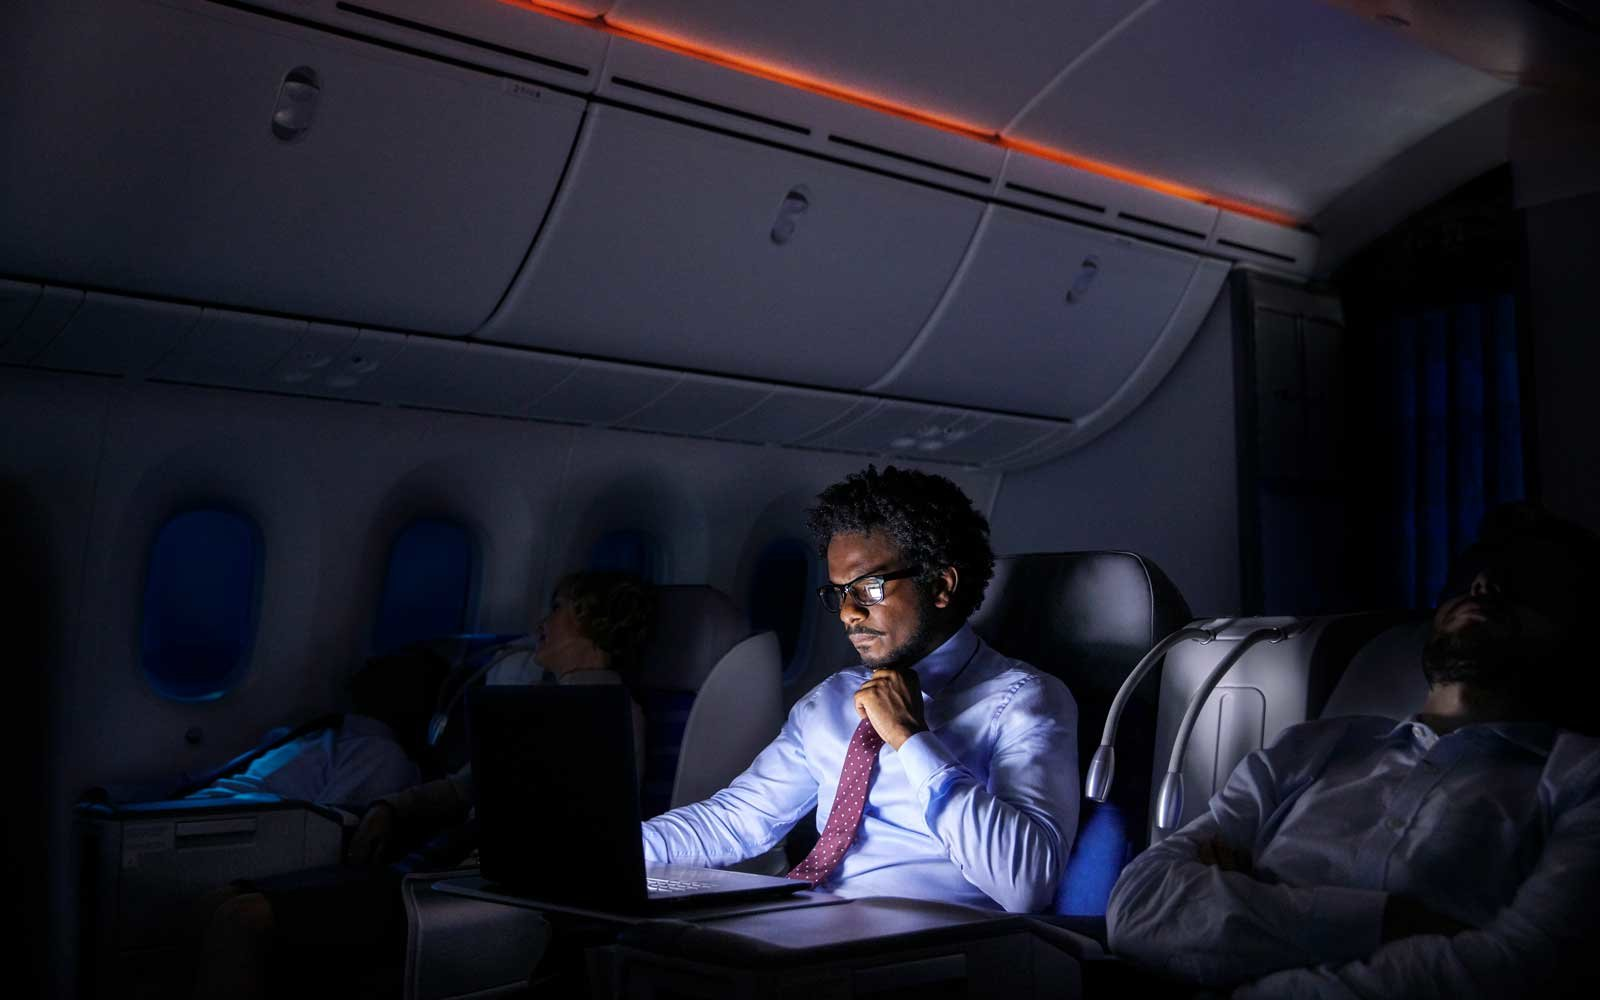 Businessman working on a laptop at night in an airplane